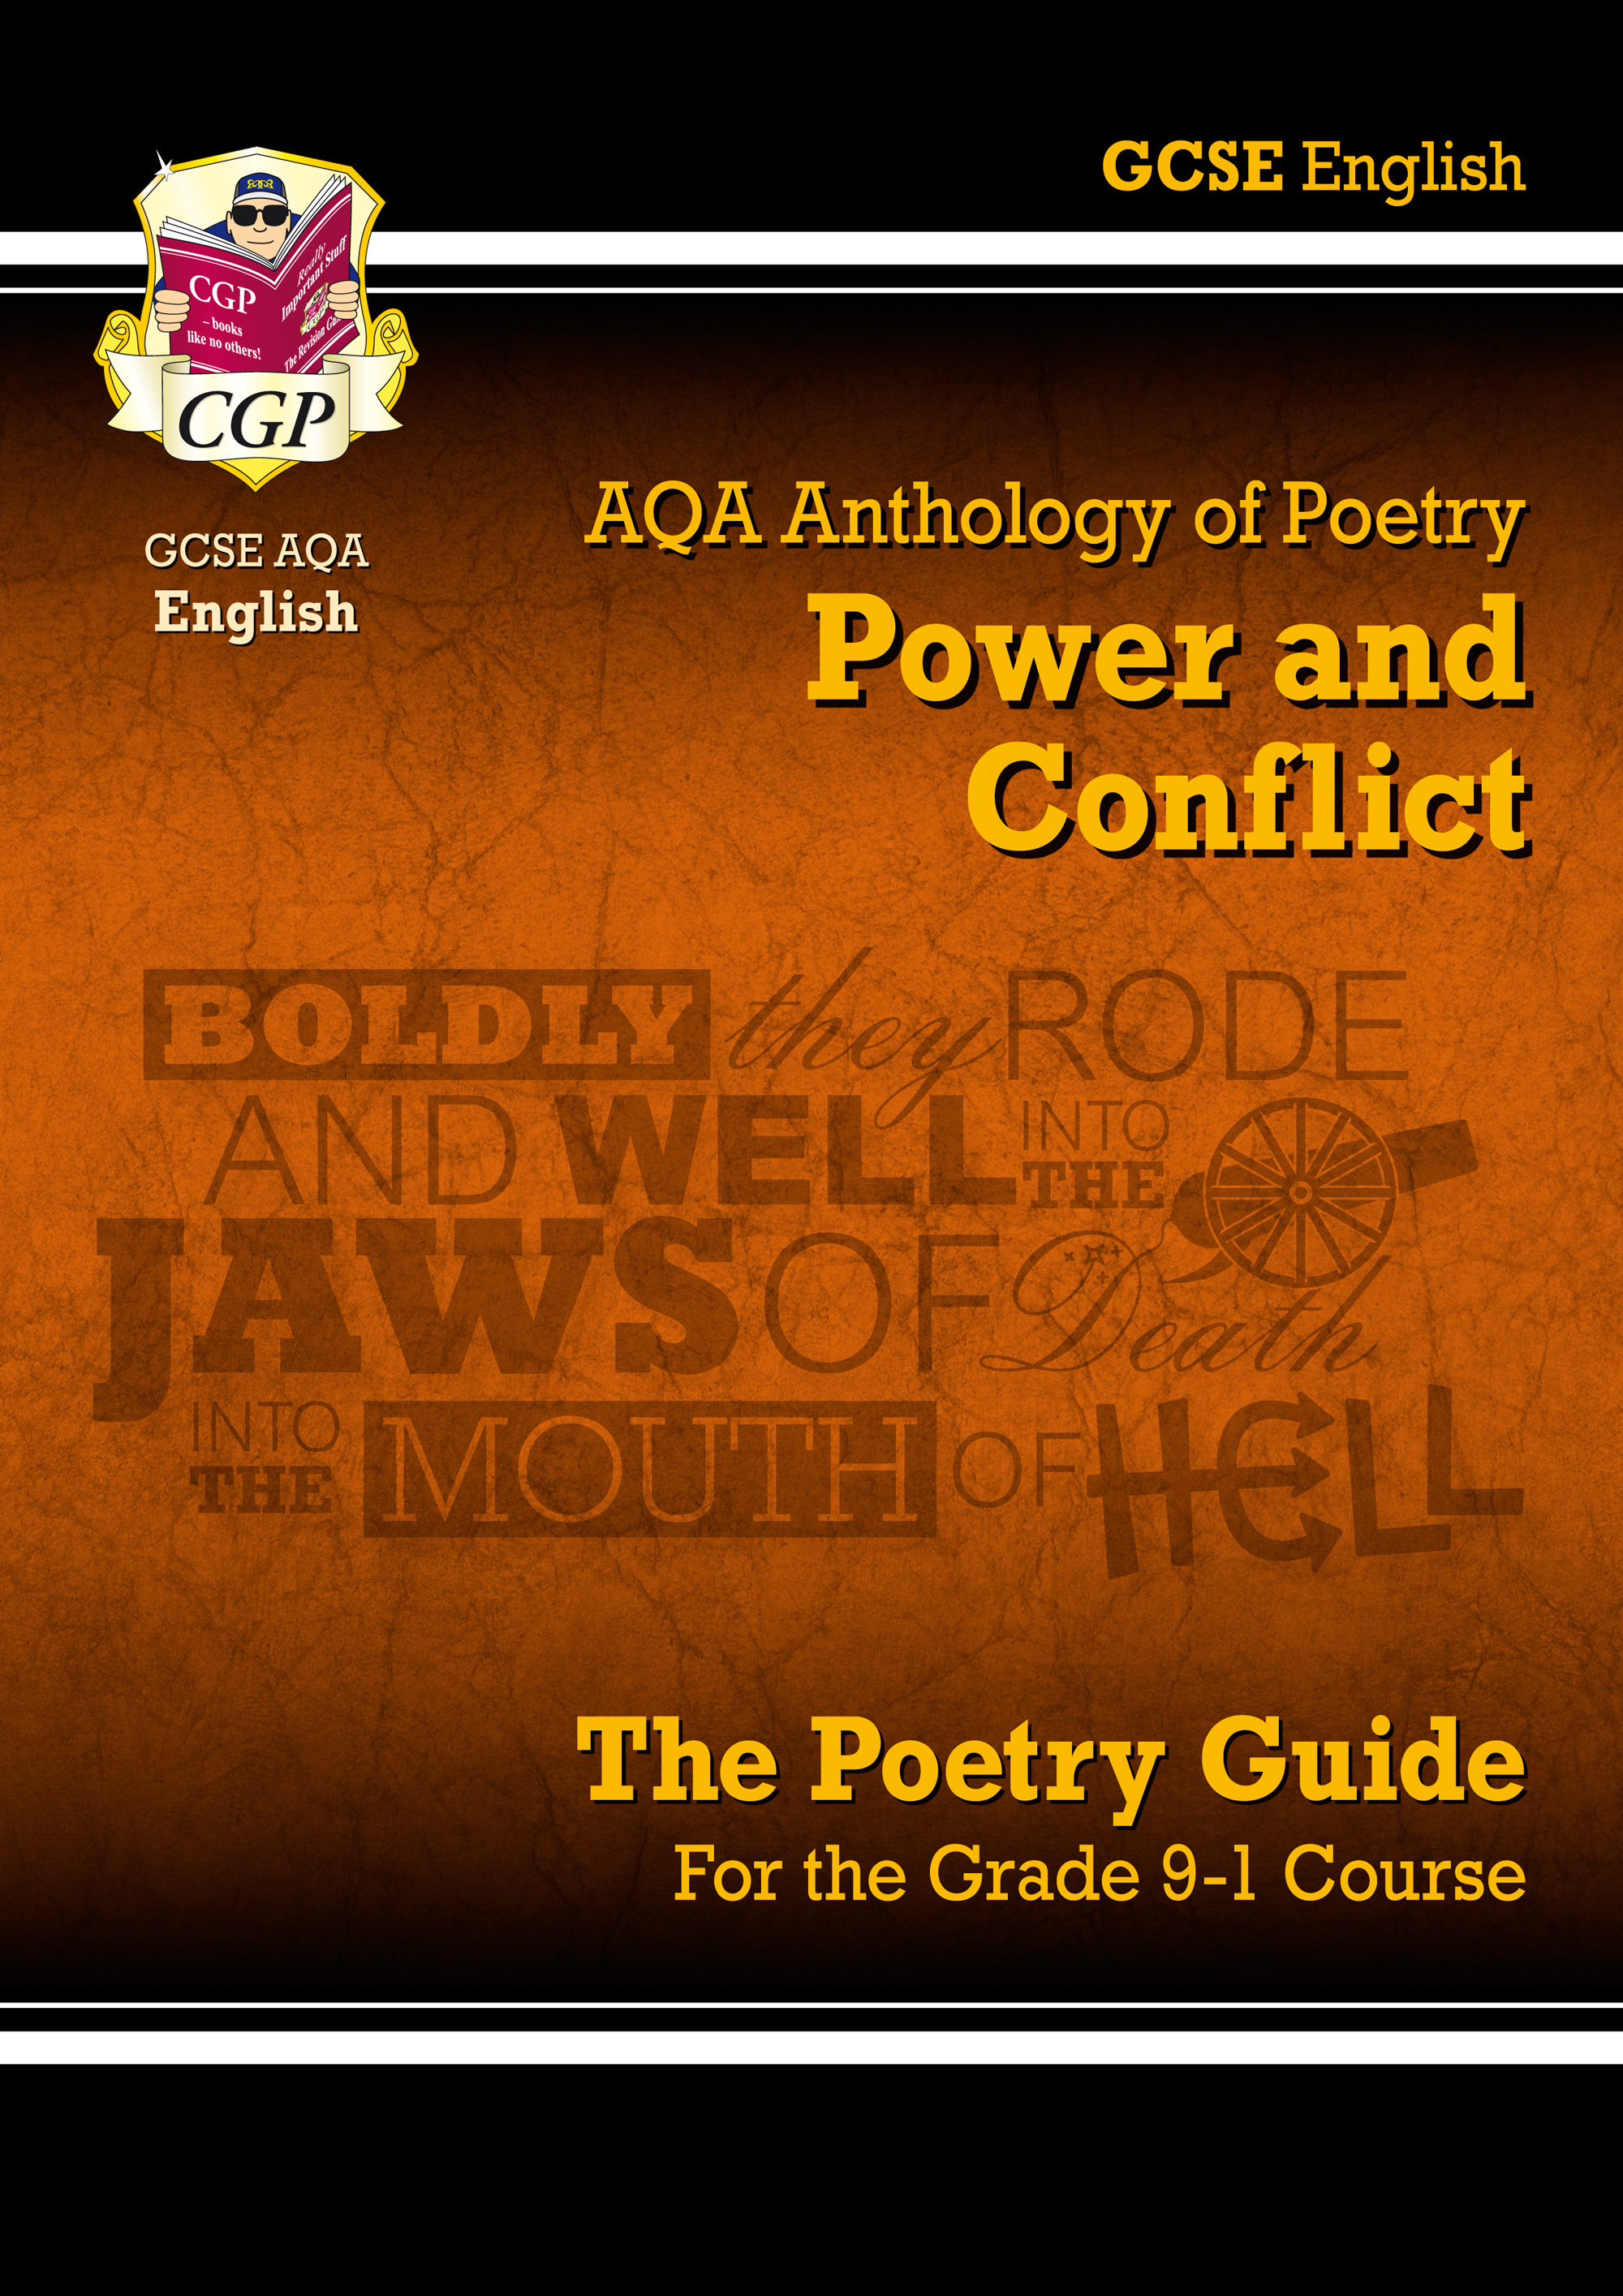 ACHR43 - GCSE English Literature AQA Poetry Guide: Power & Conflict Anthology - for the Grade 9-1 Co